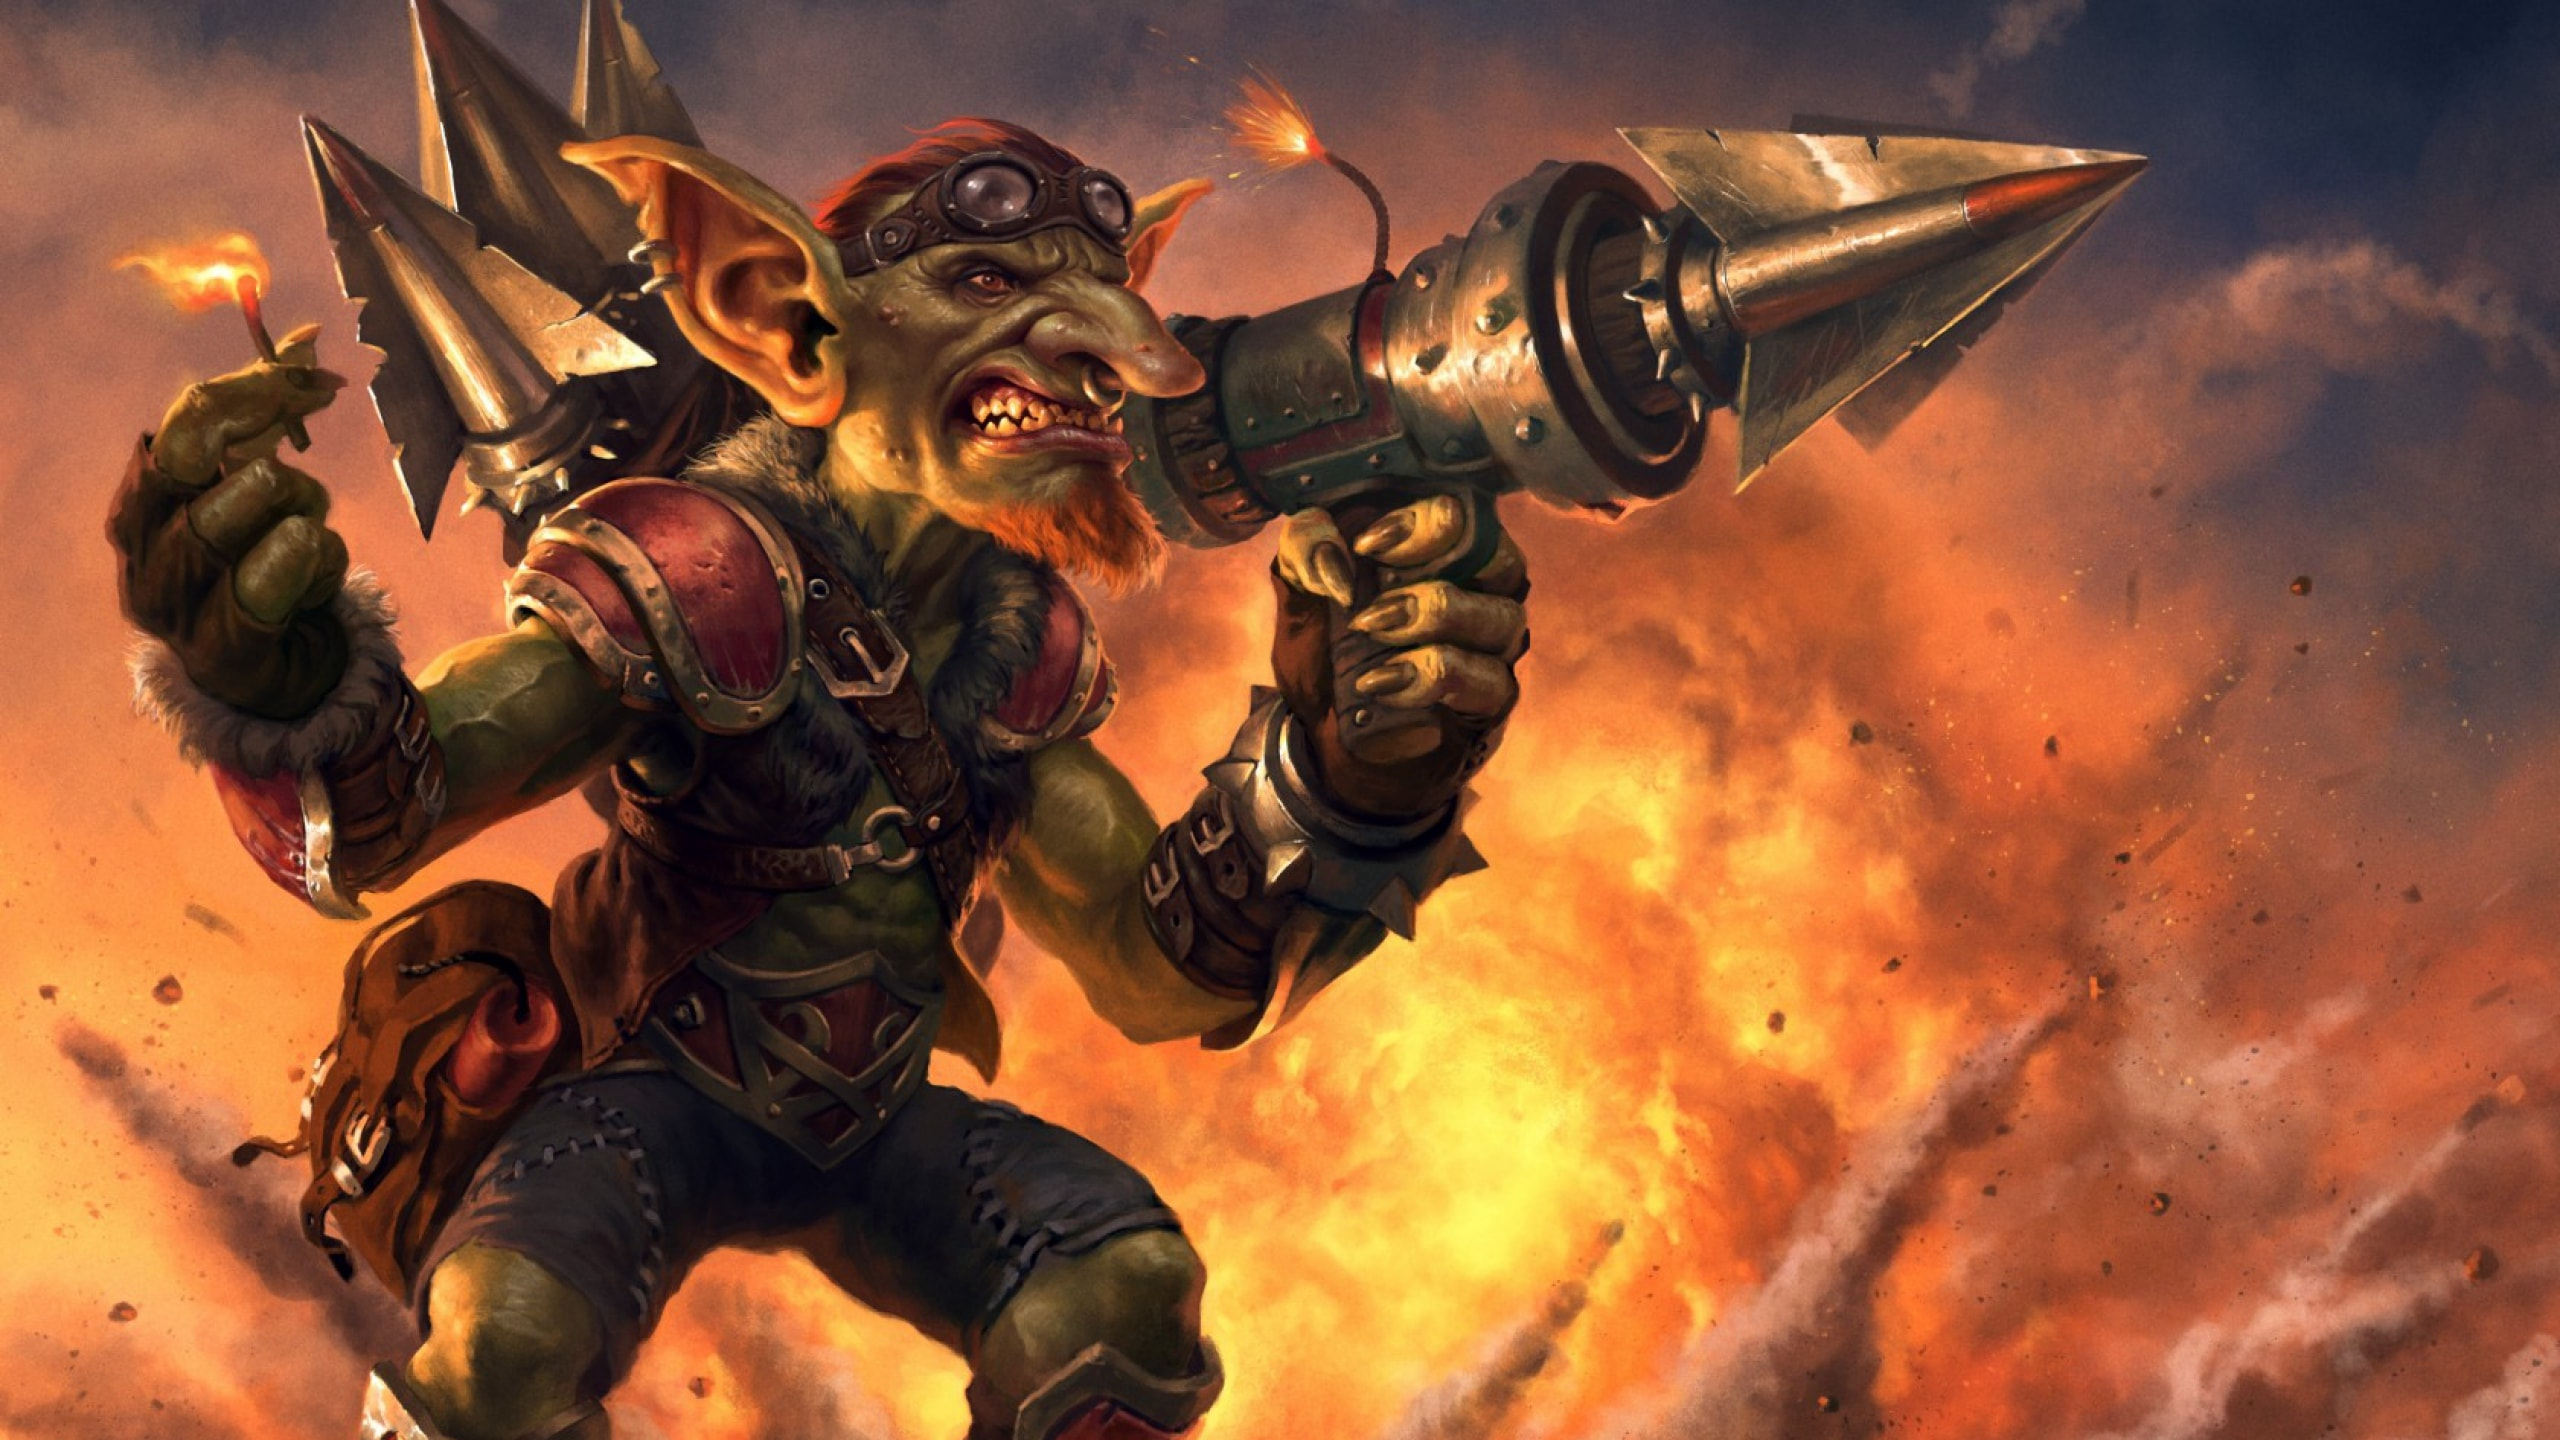 Hearthstone: Goblins Vs. Gnomes Backgrounds